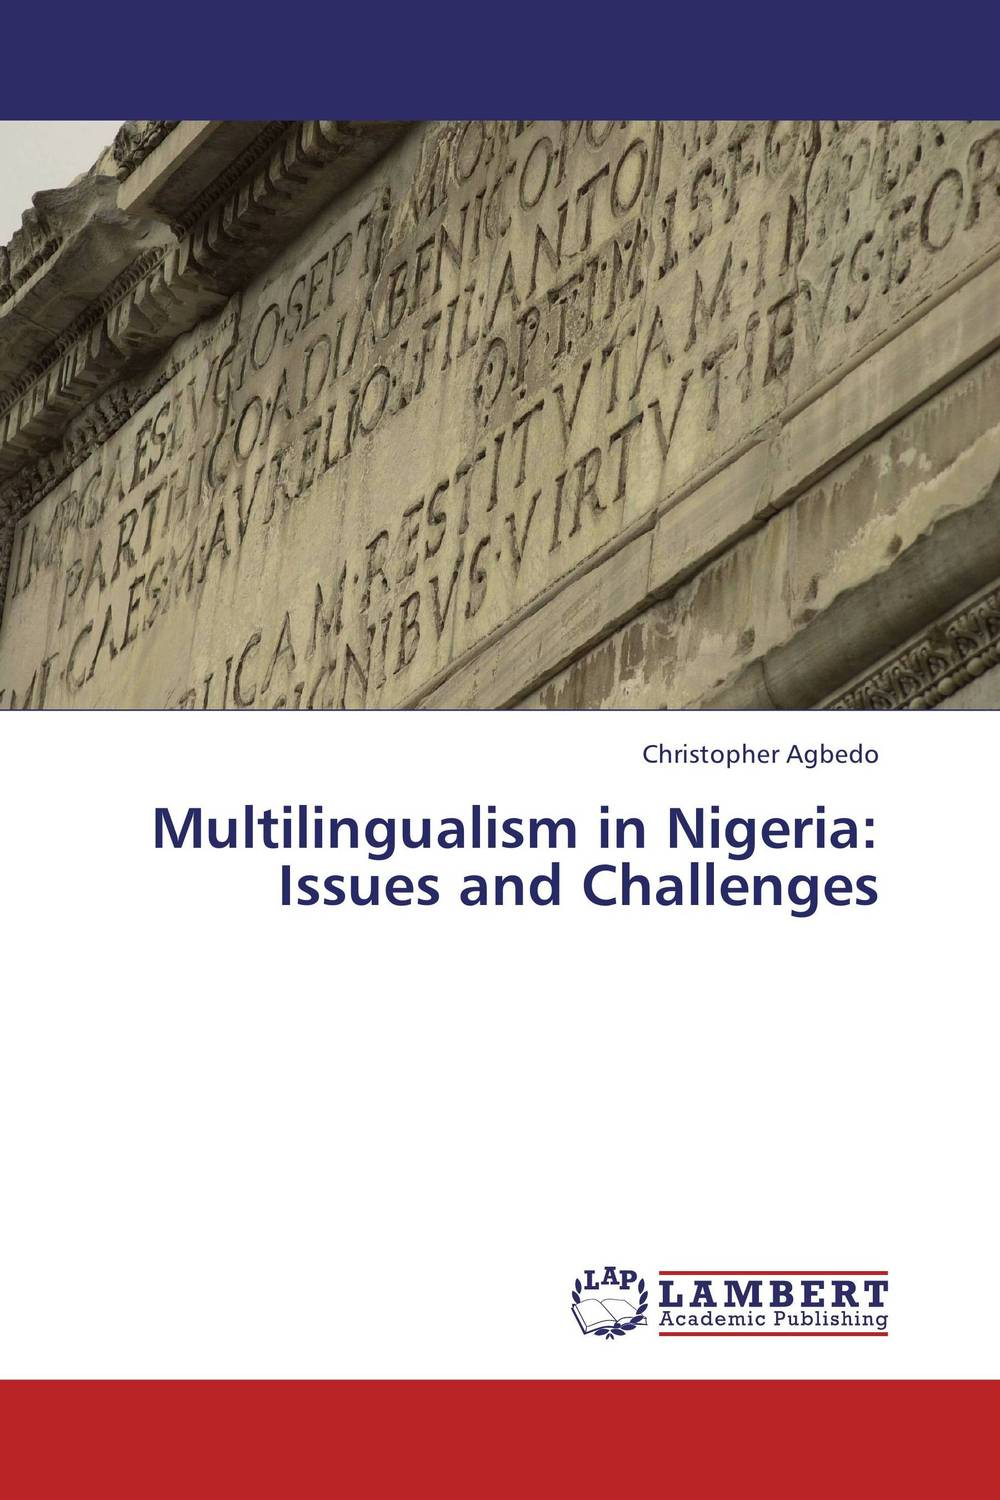 Multilingualism in Nigeria: Issues and Challenges roadmap to nigerian democracy issues and challenges